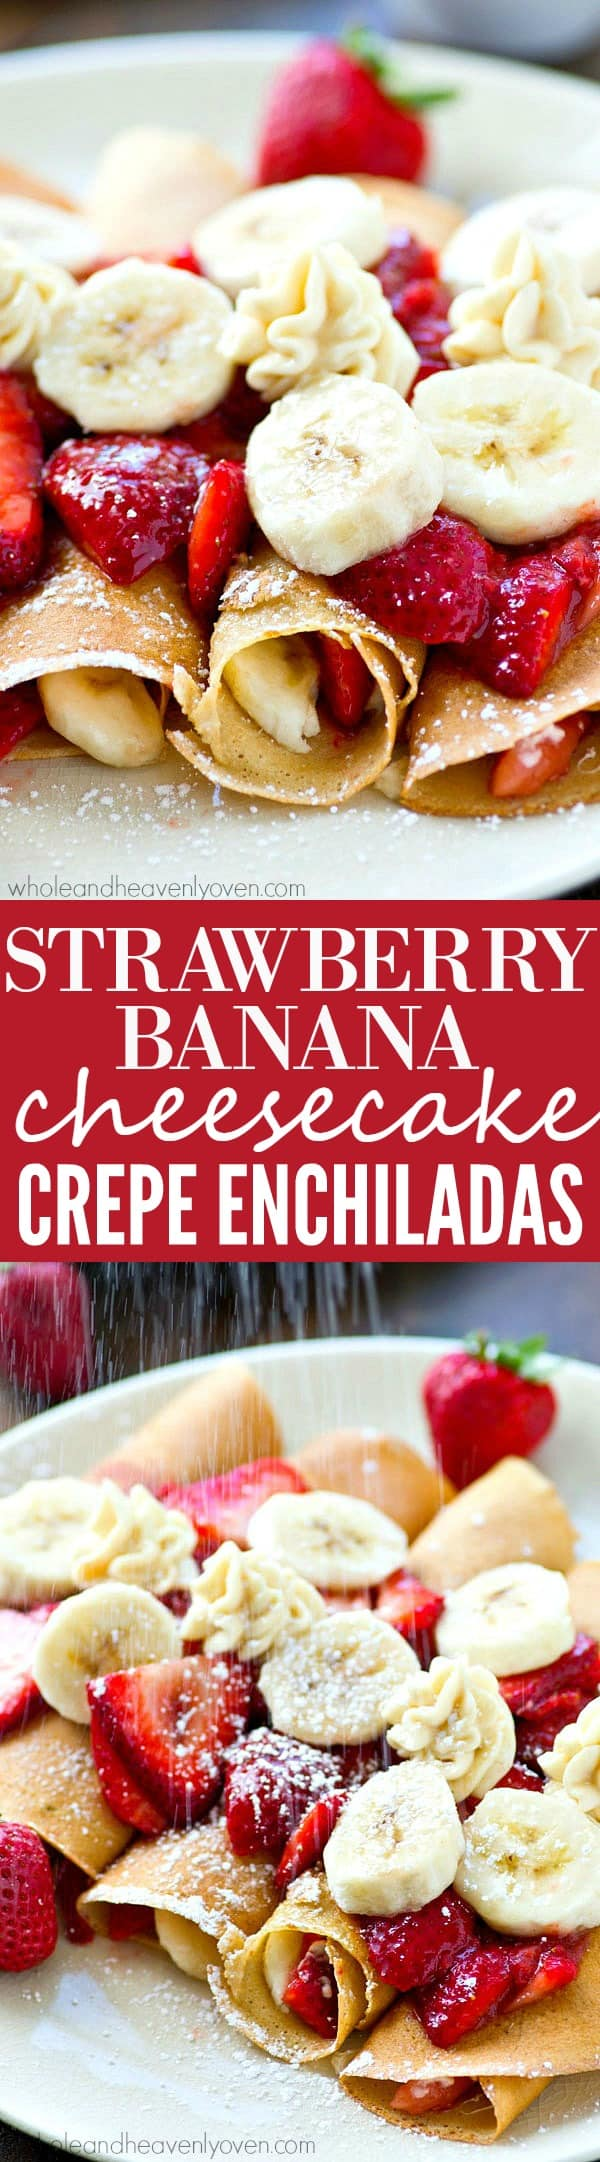 These enchilada-style crepes will be the hit of your entire brunch table! My favorite crepe recipe stuffed with a cheesecake filling and tons of fresh strawberry sauce and bananas.---you won't be able to stop eating them!